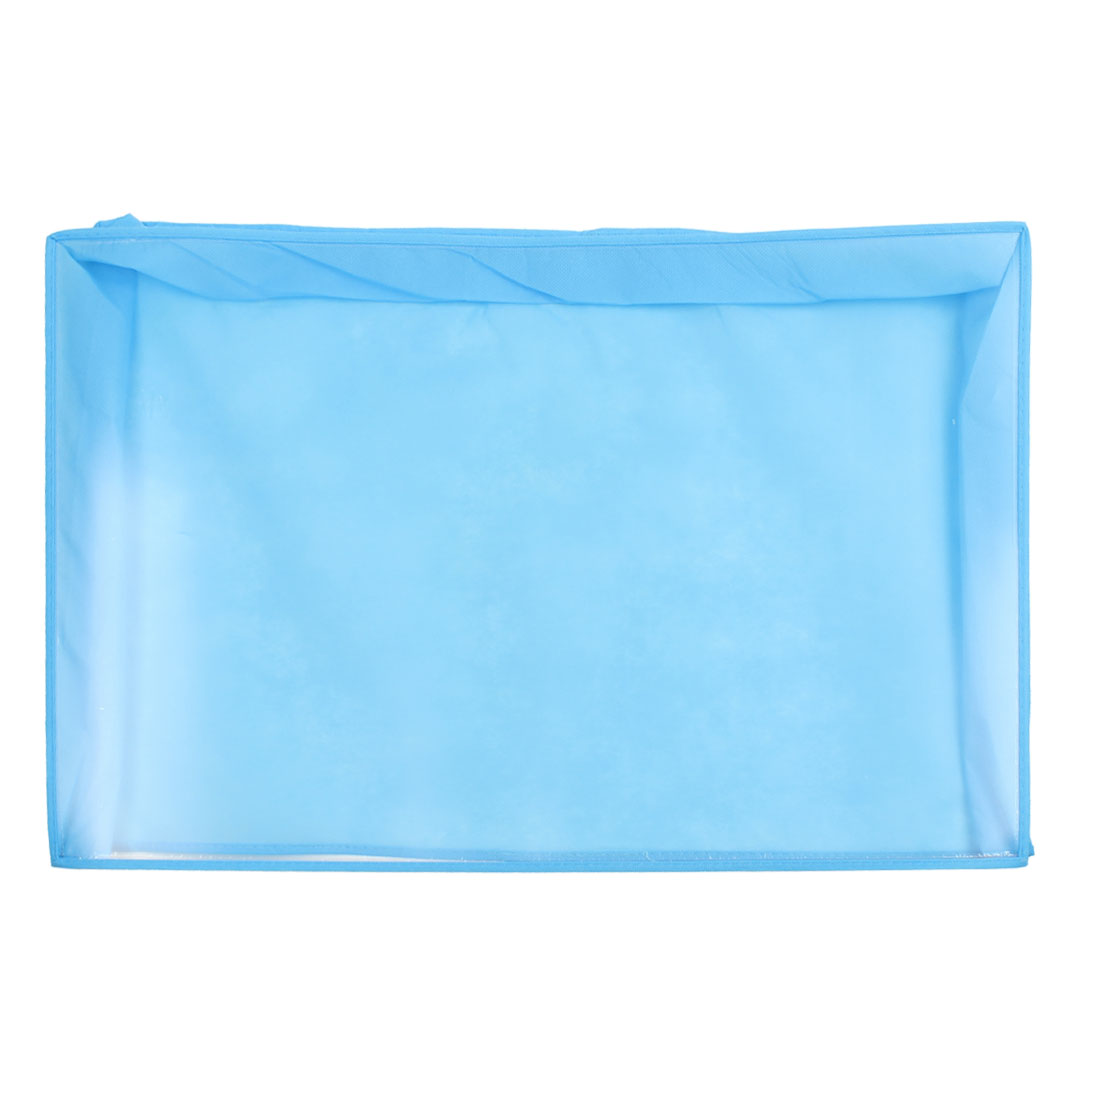 "Desktop Computer Blue Dust Cover Protector for 20""-22"" LCD Widescreen Monitor"